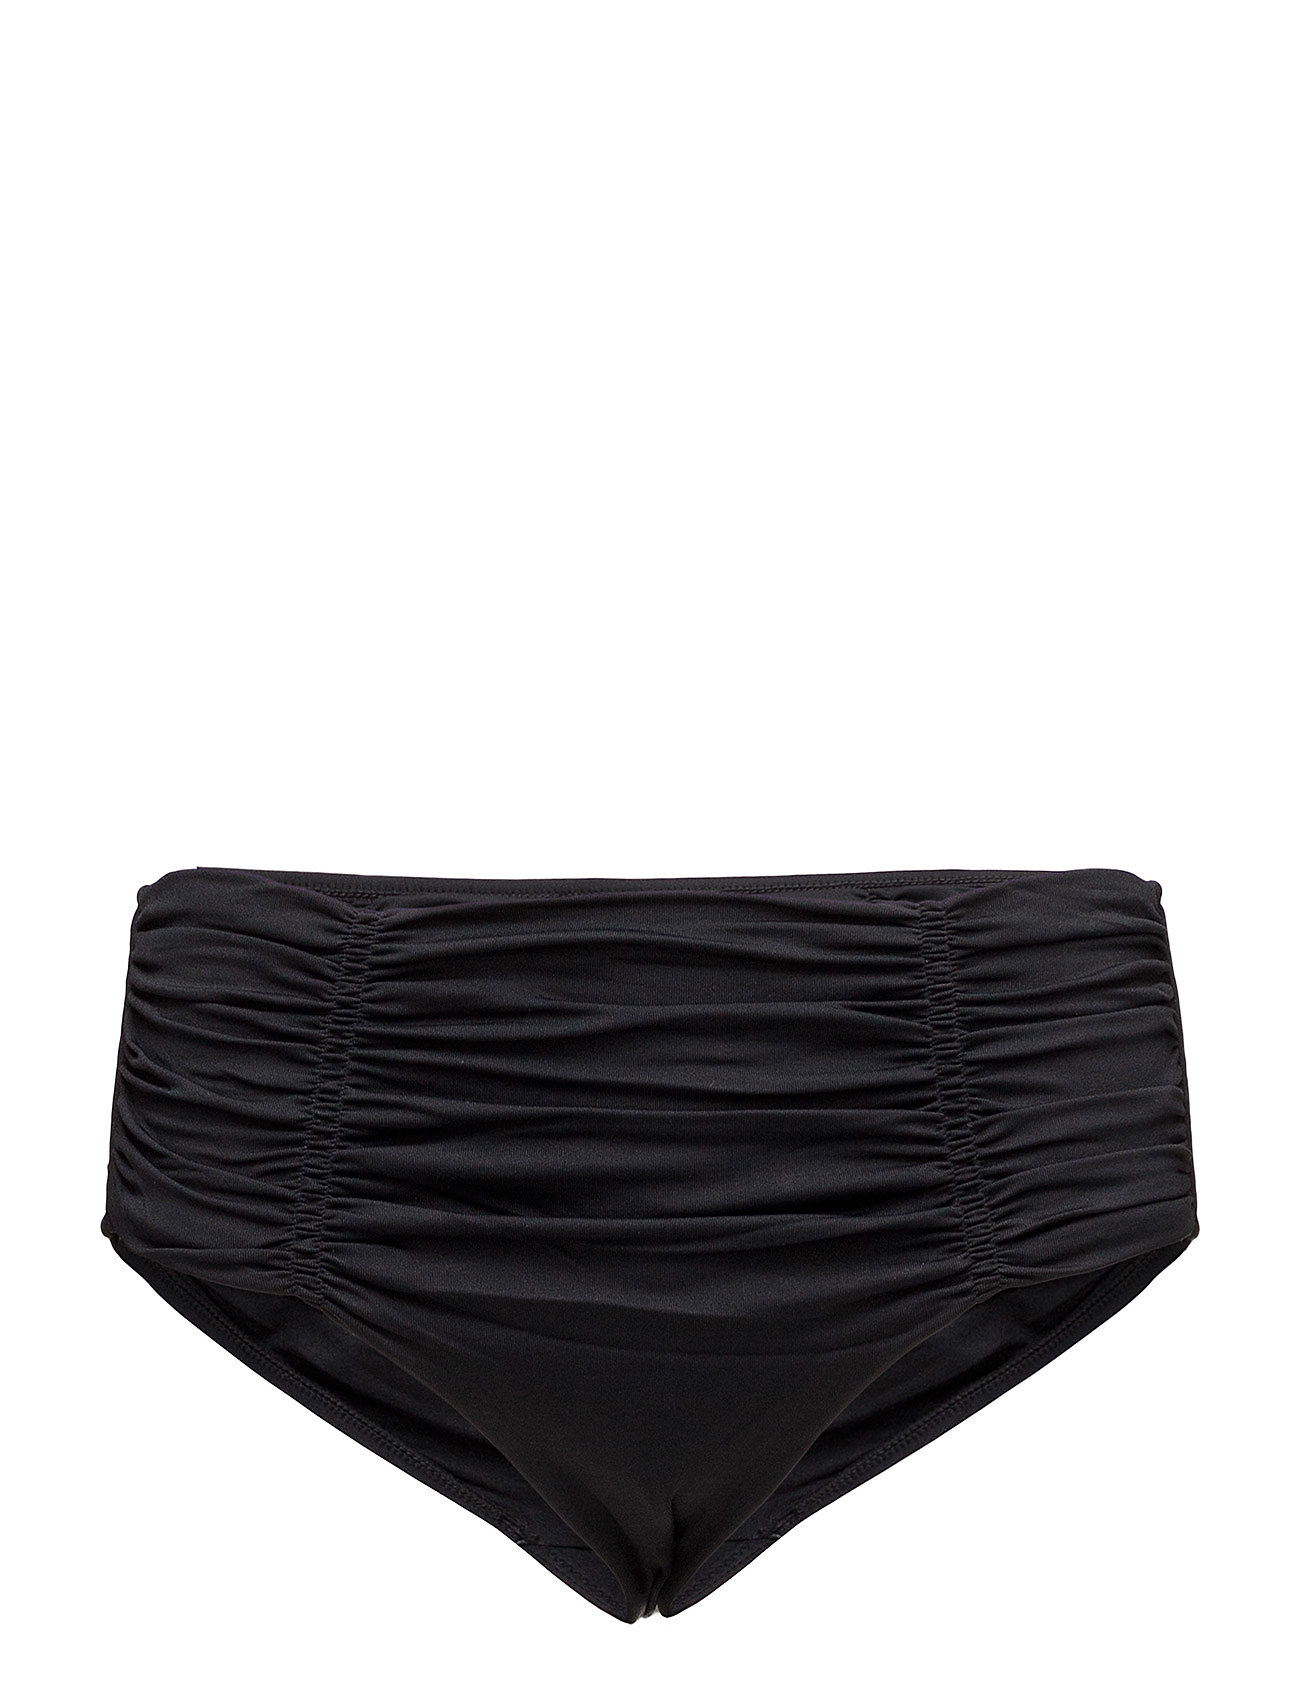 Seafolly Gathered Front Retro Pant - BLACK